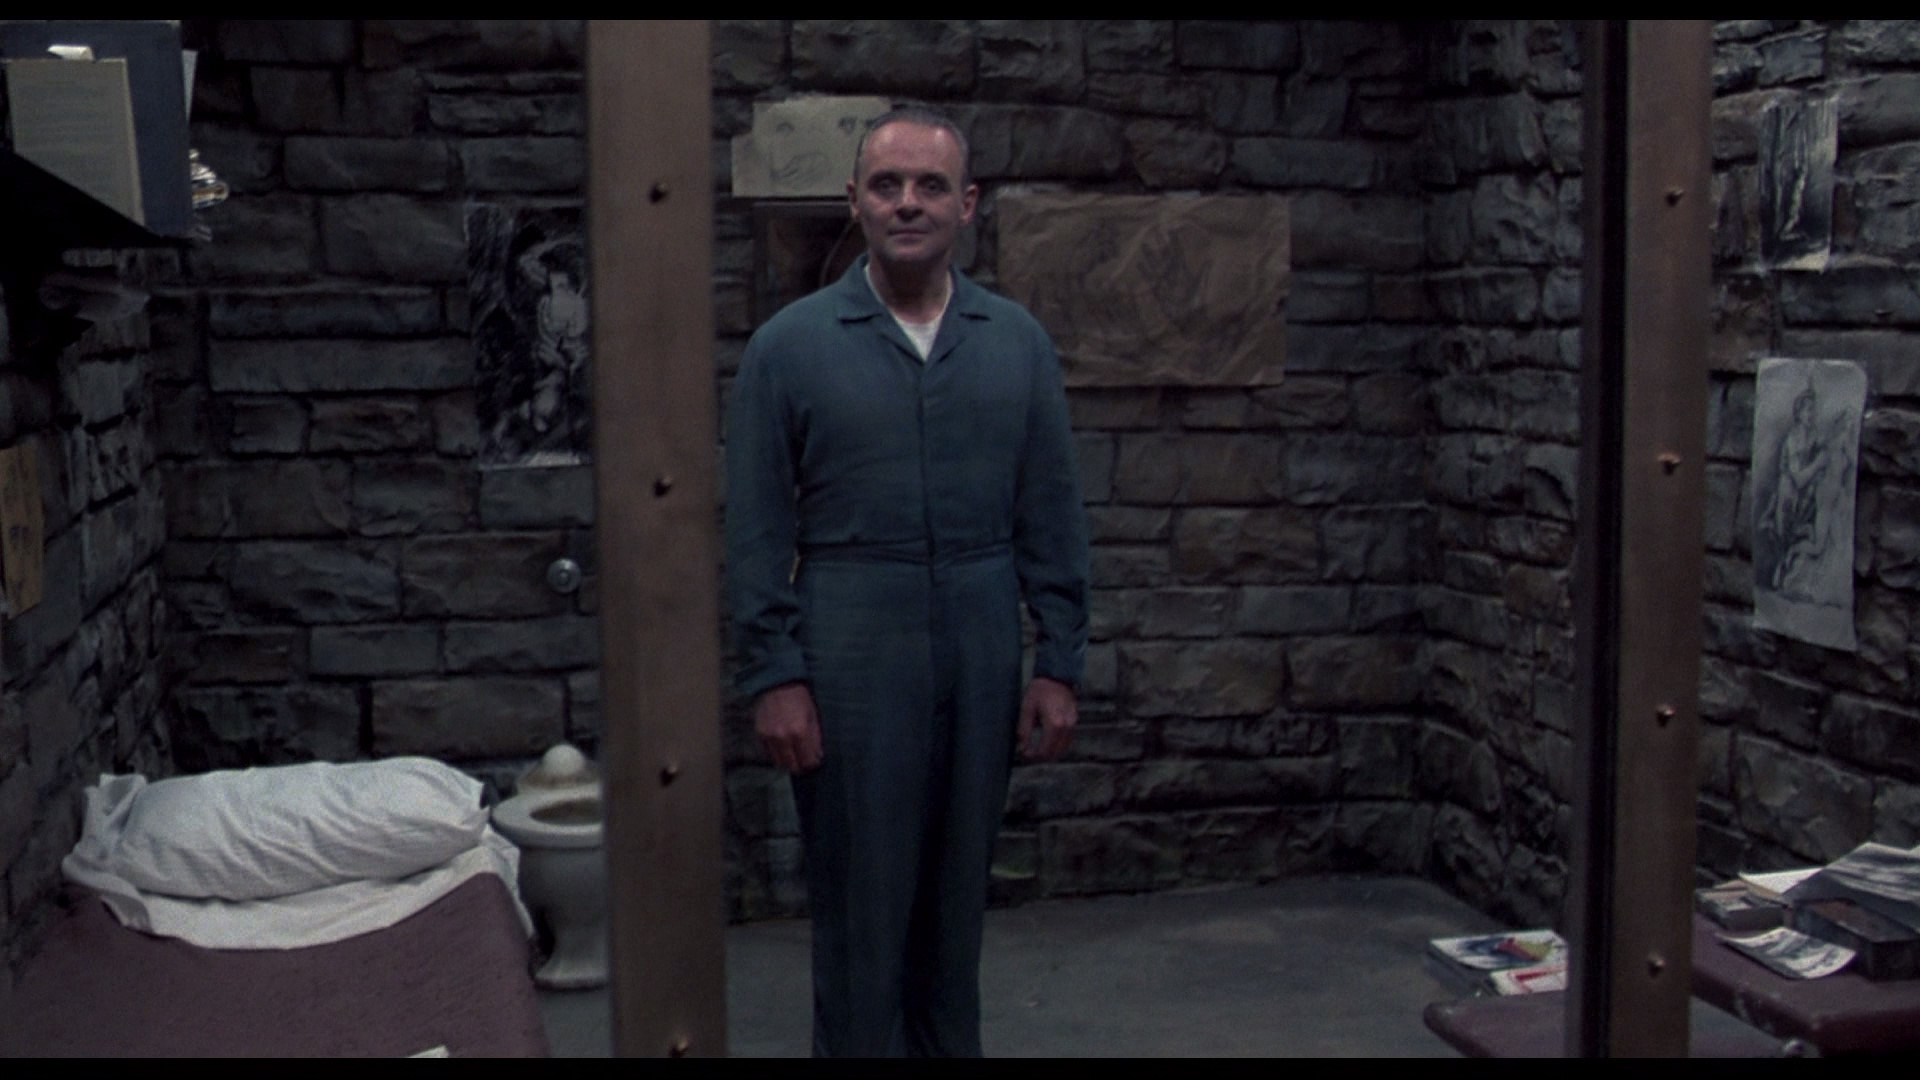 ... SILENCE OF THE LAMBS. Large20silence20of20the20lambs4